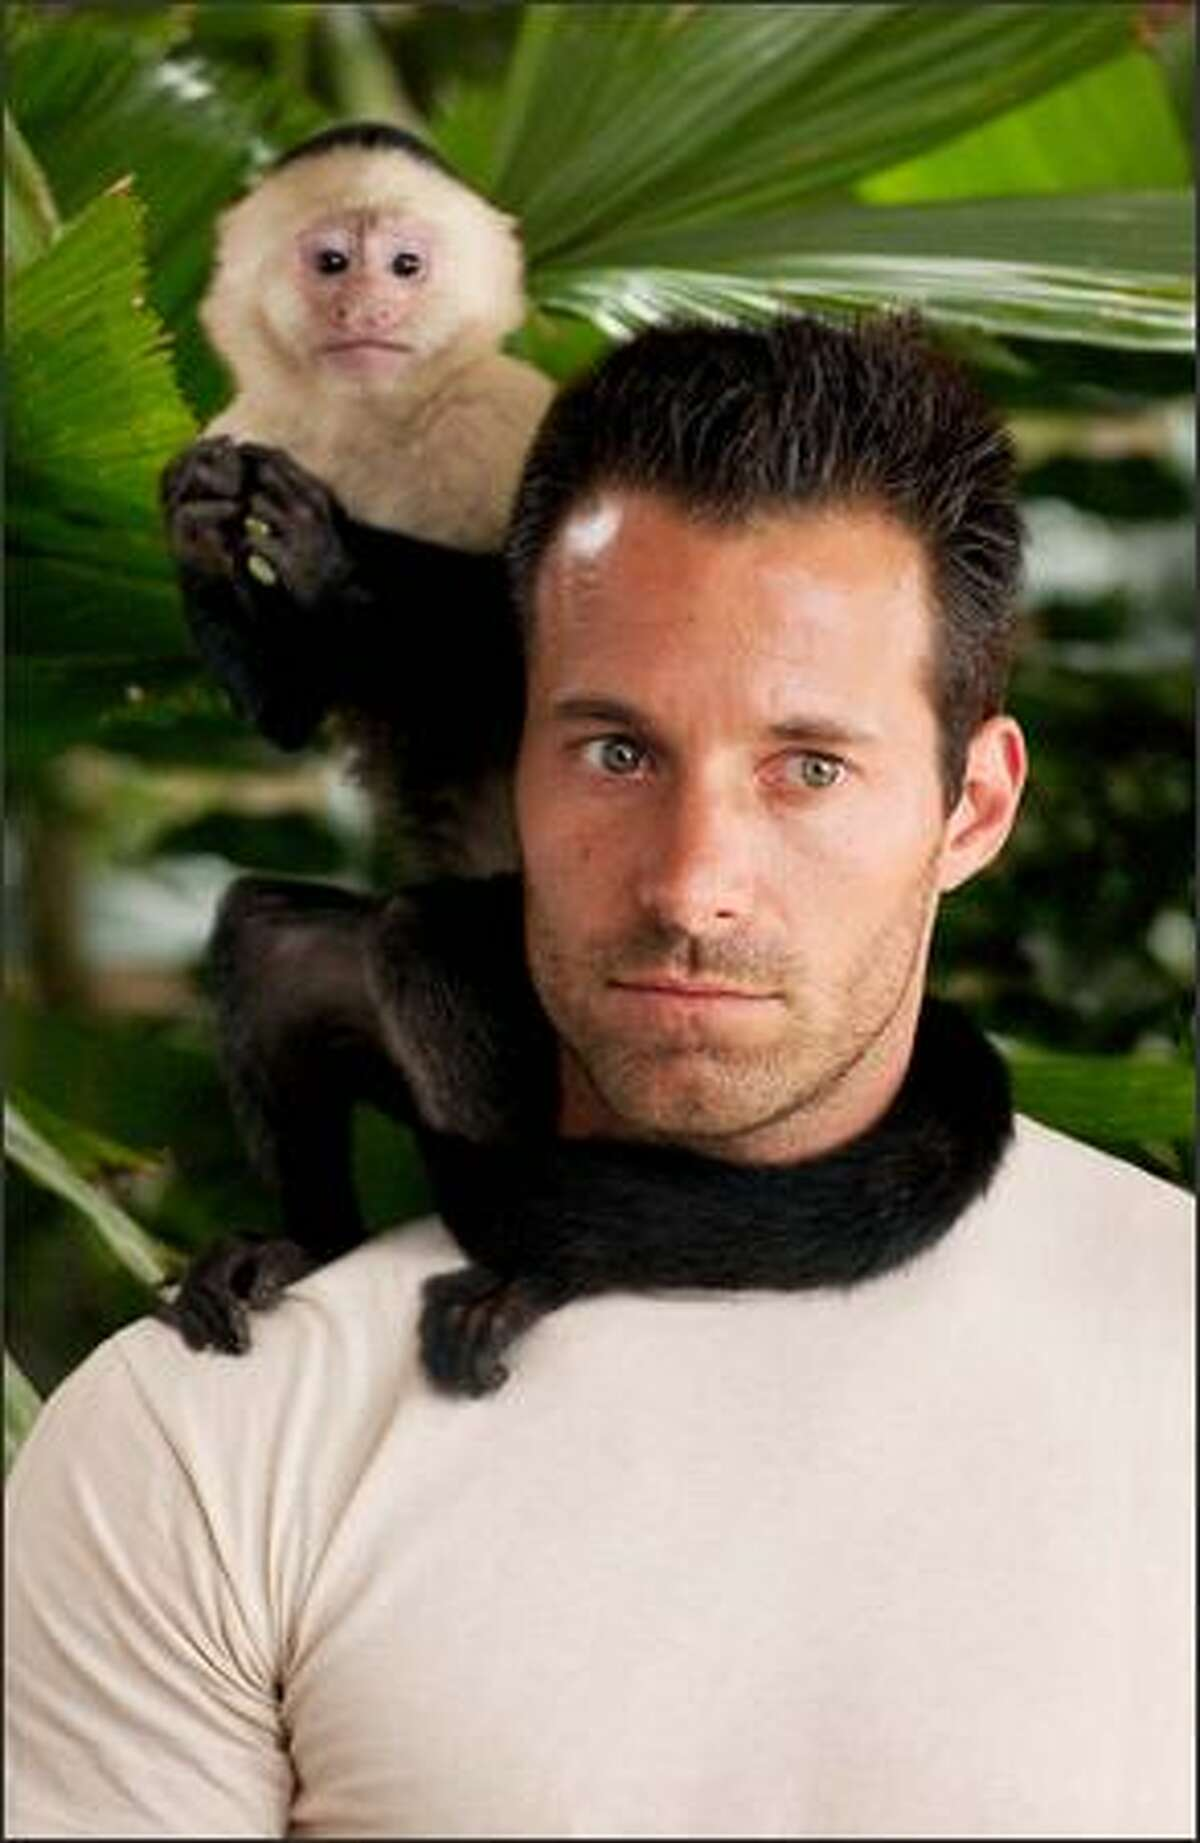 Johnny Messner plays Capt. Bill Johnson, a rugged loner who lives in the jungle on his boat. For a hefty fee, he agrees to take the scientists downriver even though the situation is fraught with peril. The only one he cares about is his pet monkey, Kong.